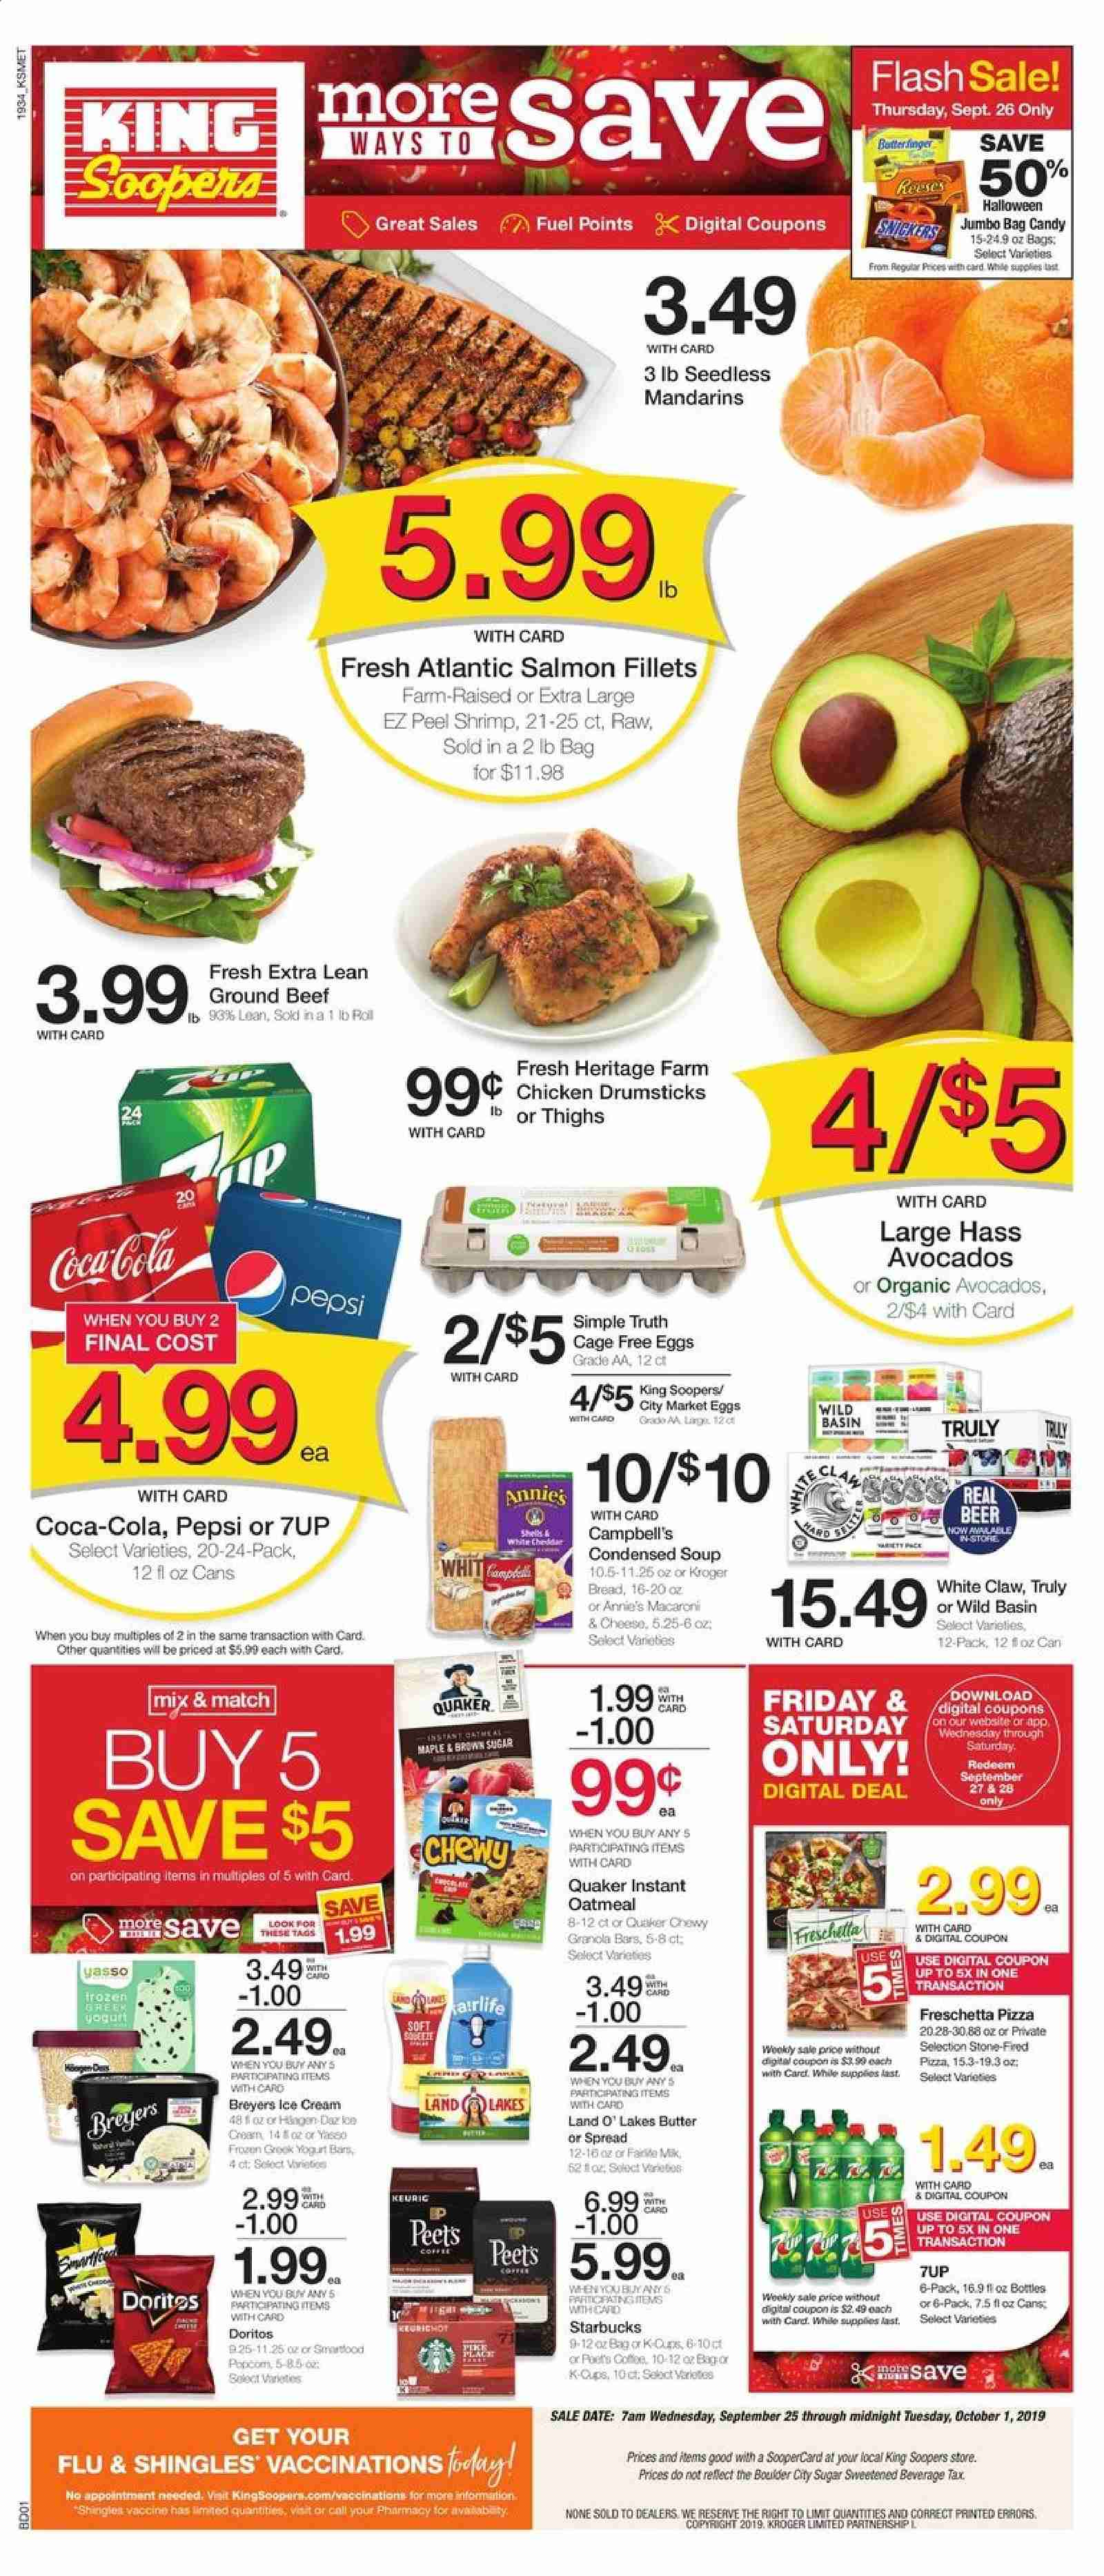 King Soopers Flyer  - 09.25.2019 - 10.01.2019. Page 1.